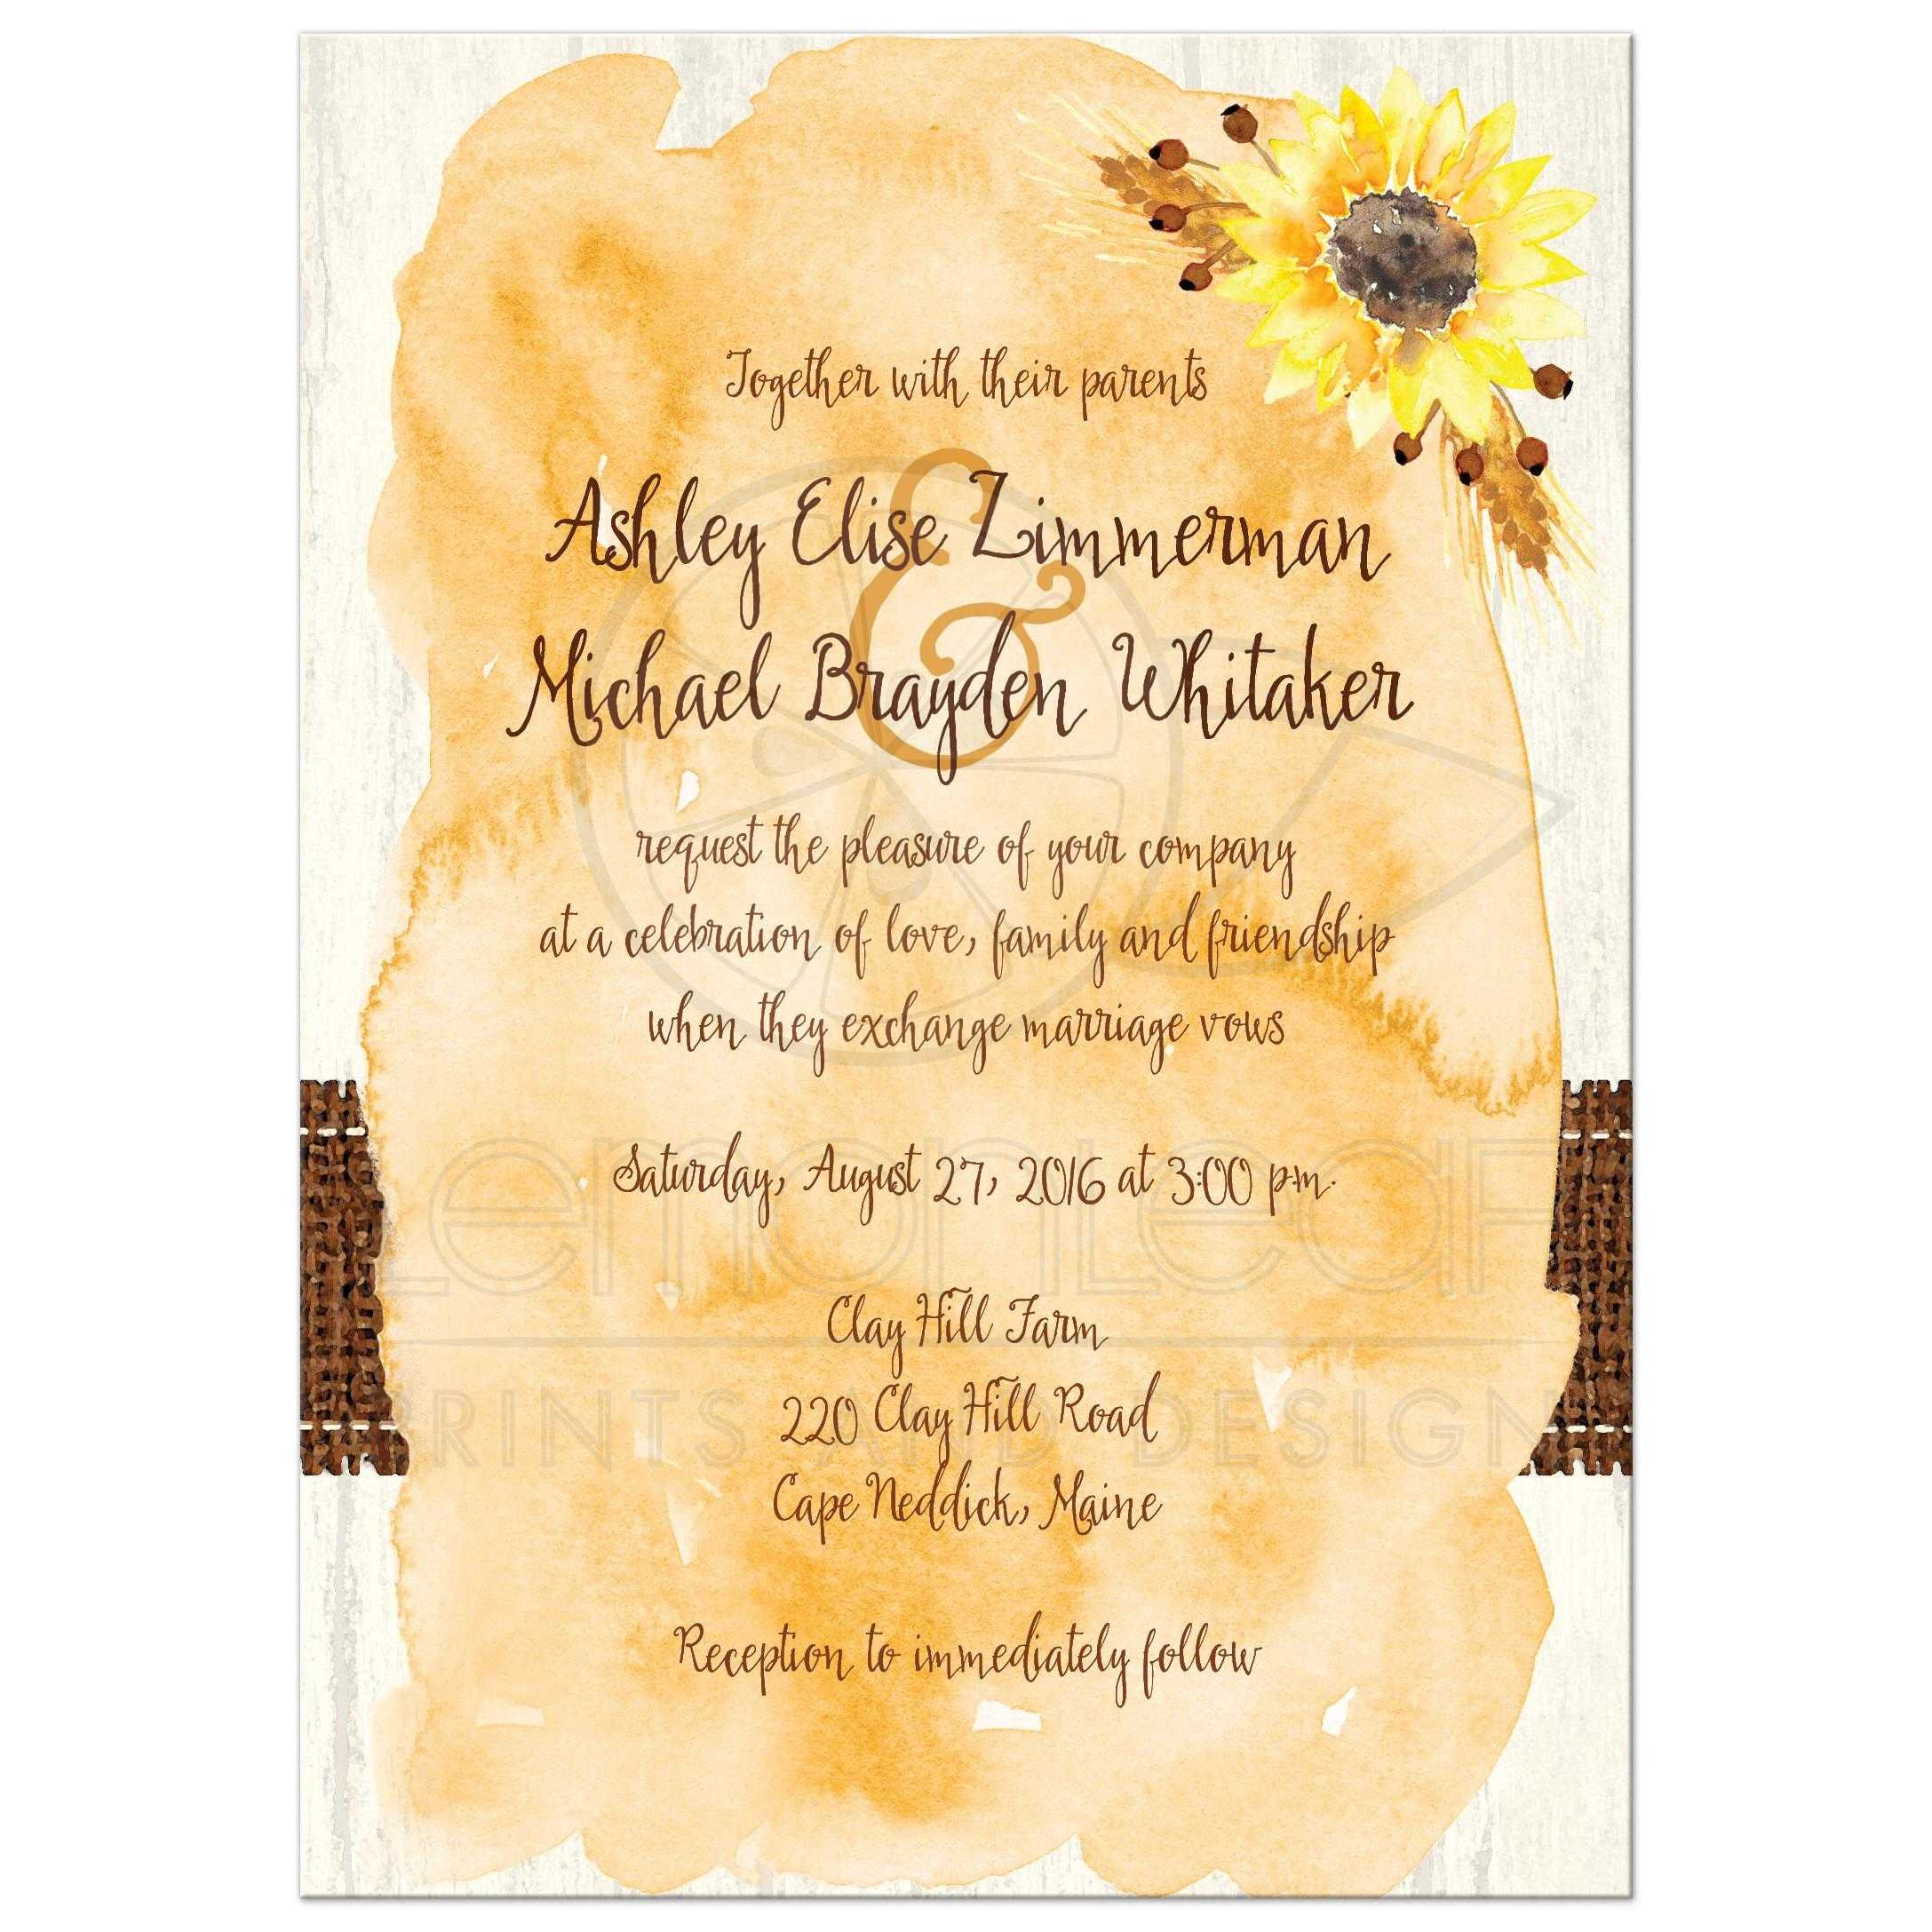 Rustic Wedding Invitation | Watercolor Sunflowers, Stitched Burlap ...